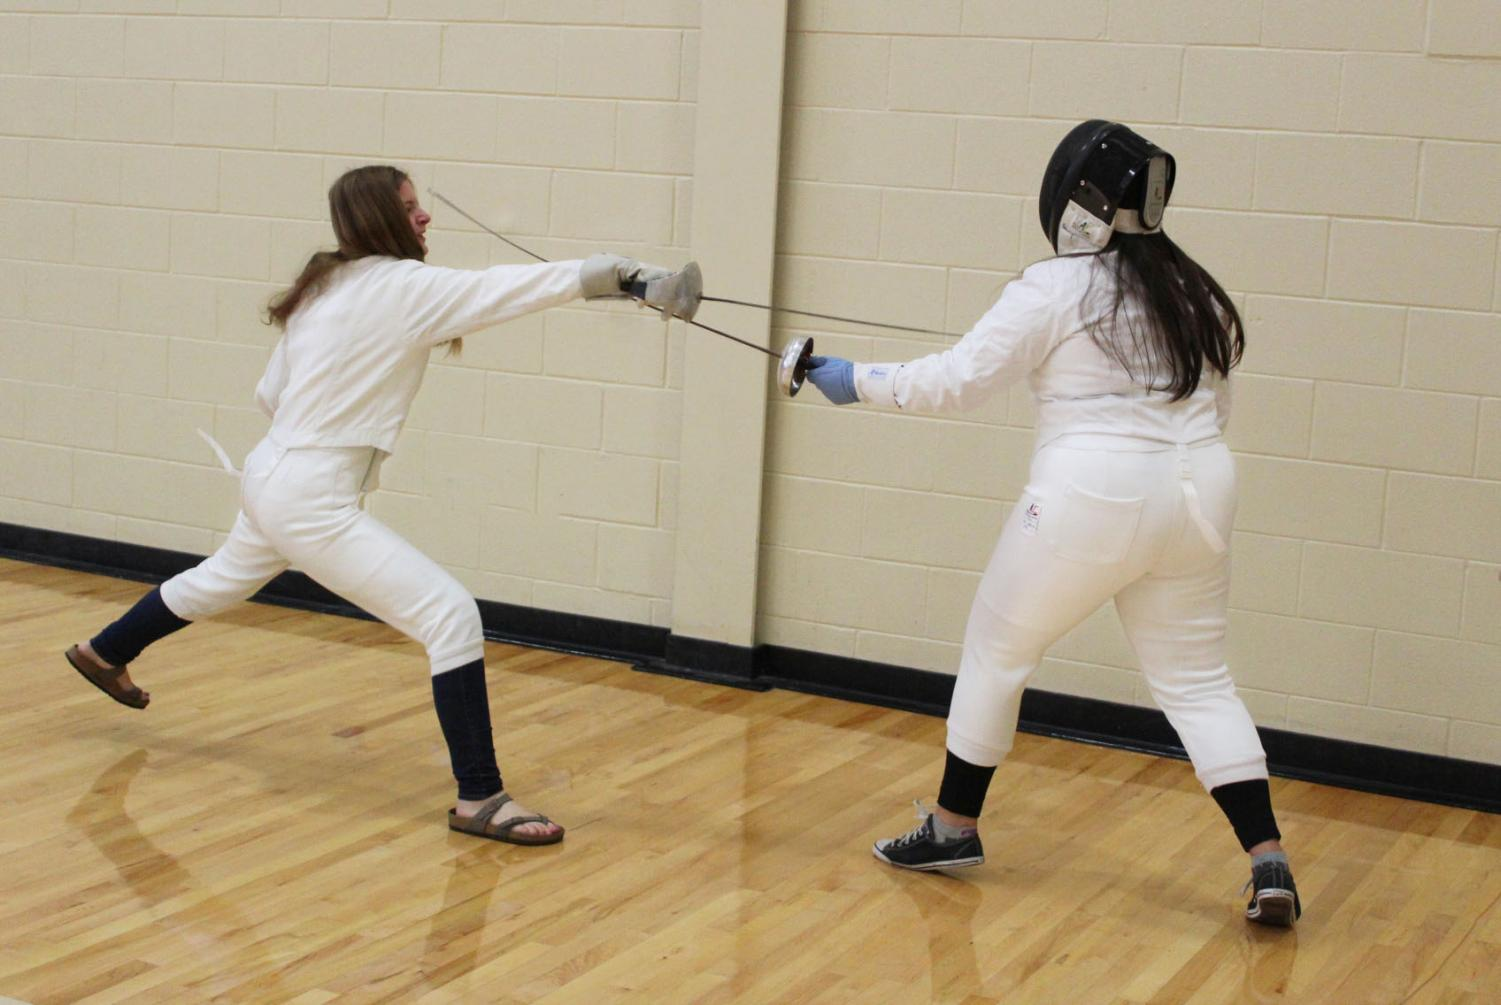 Although fencing is generally recognized as a sport, LHS offers it as a club. Seniors Anna Schellin and Charlotte Stevenson practice for a match.